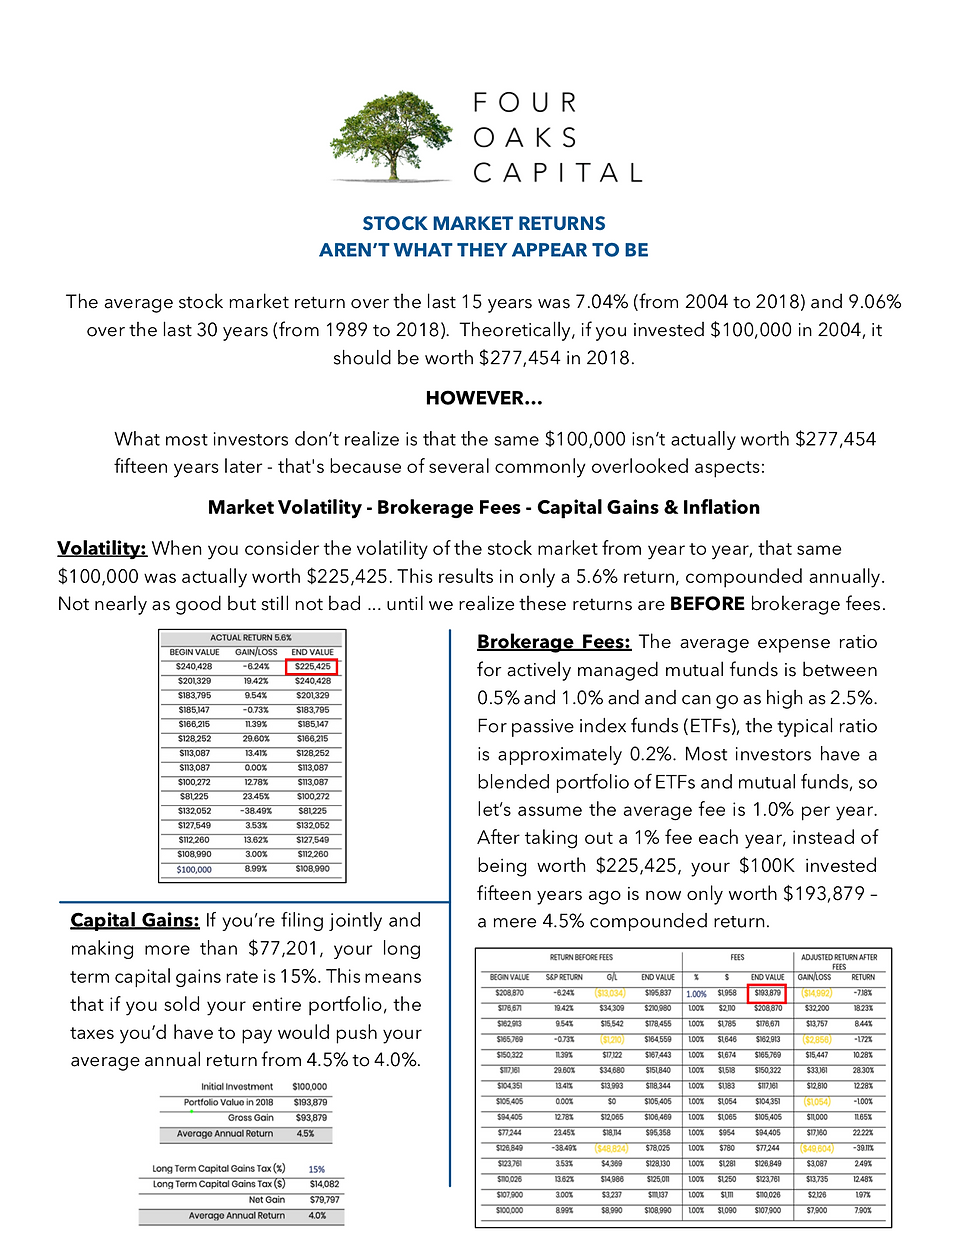 Four Oaks Capital - Stock Market vs. Rea